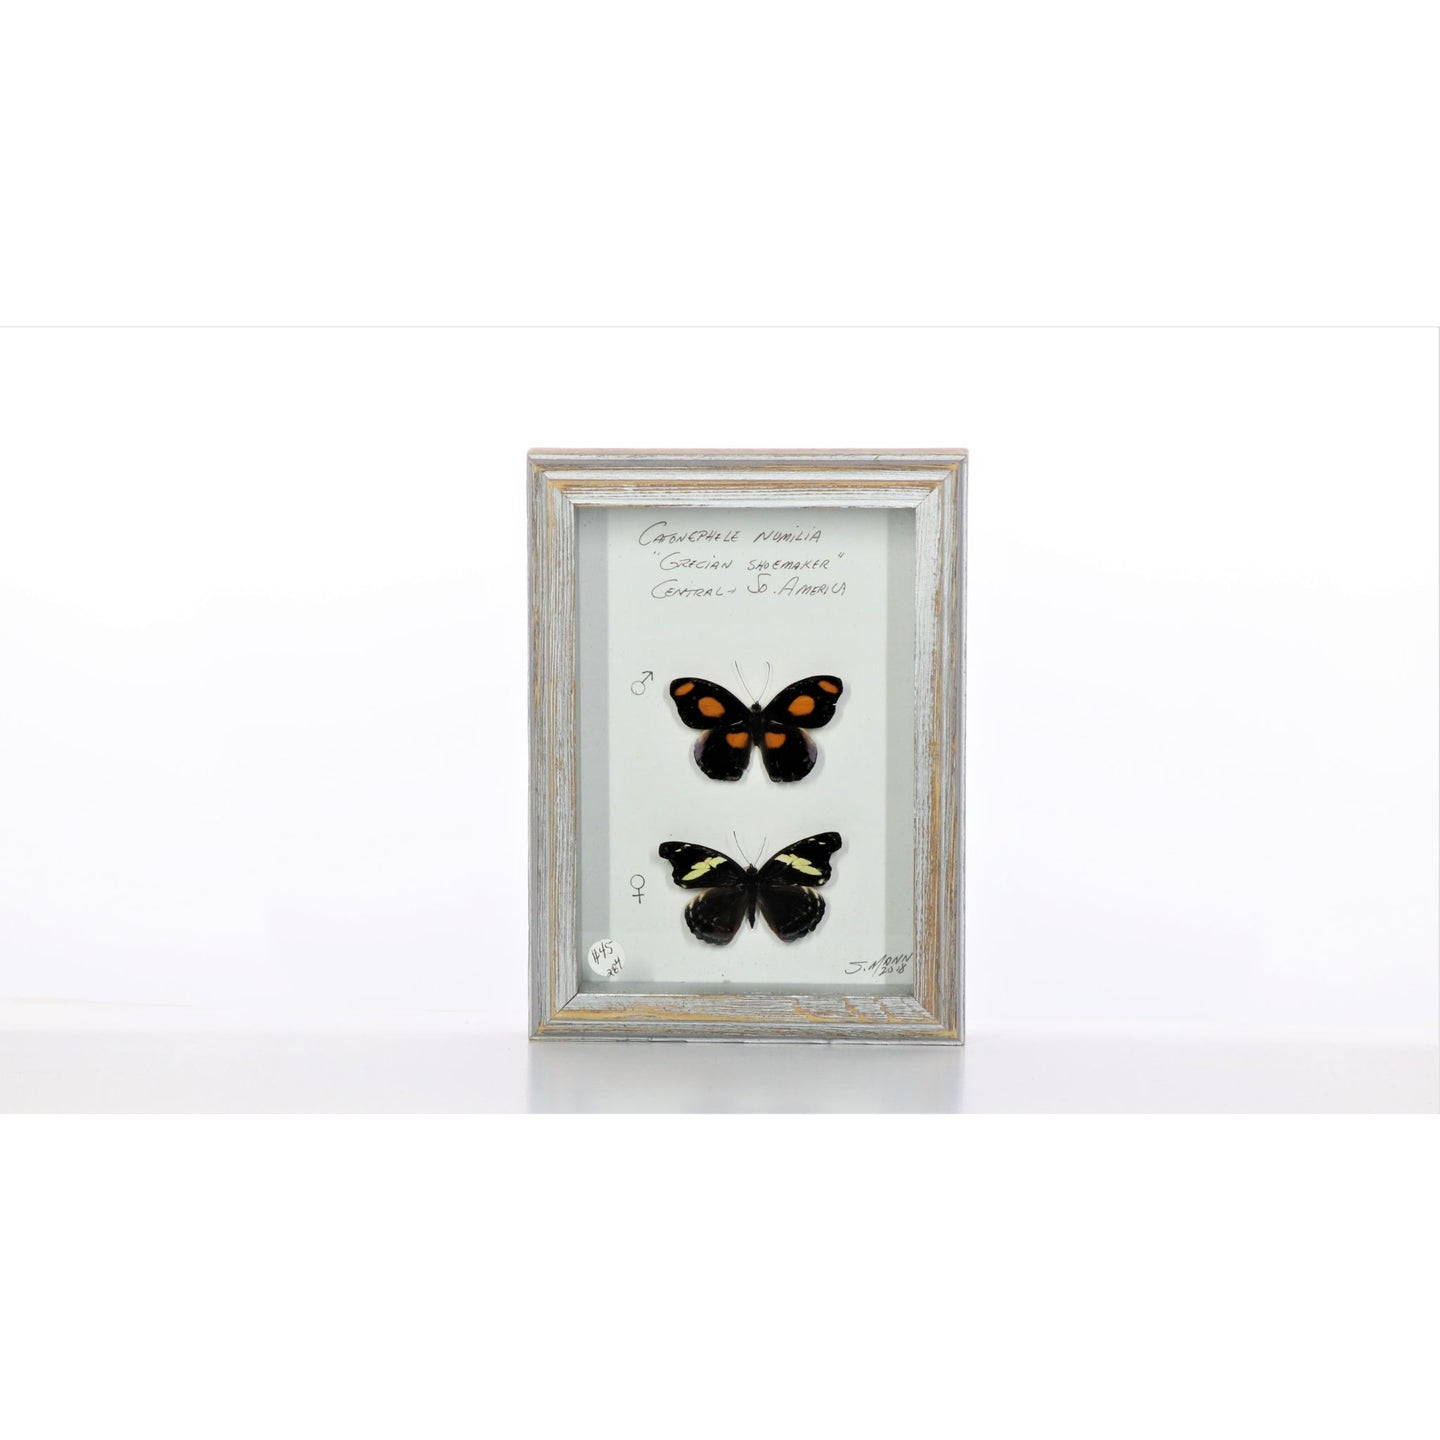 Grecian Shoemaker Butterfly Pair 5x7 Gray #284 Framed Art - Insecta Etcetera